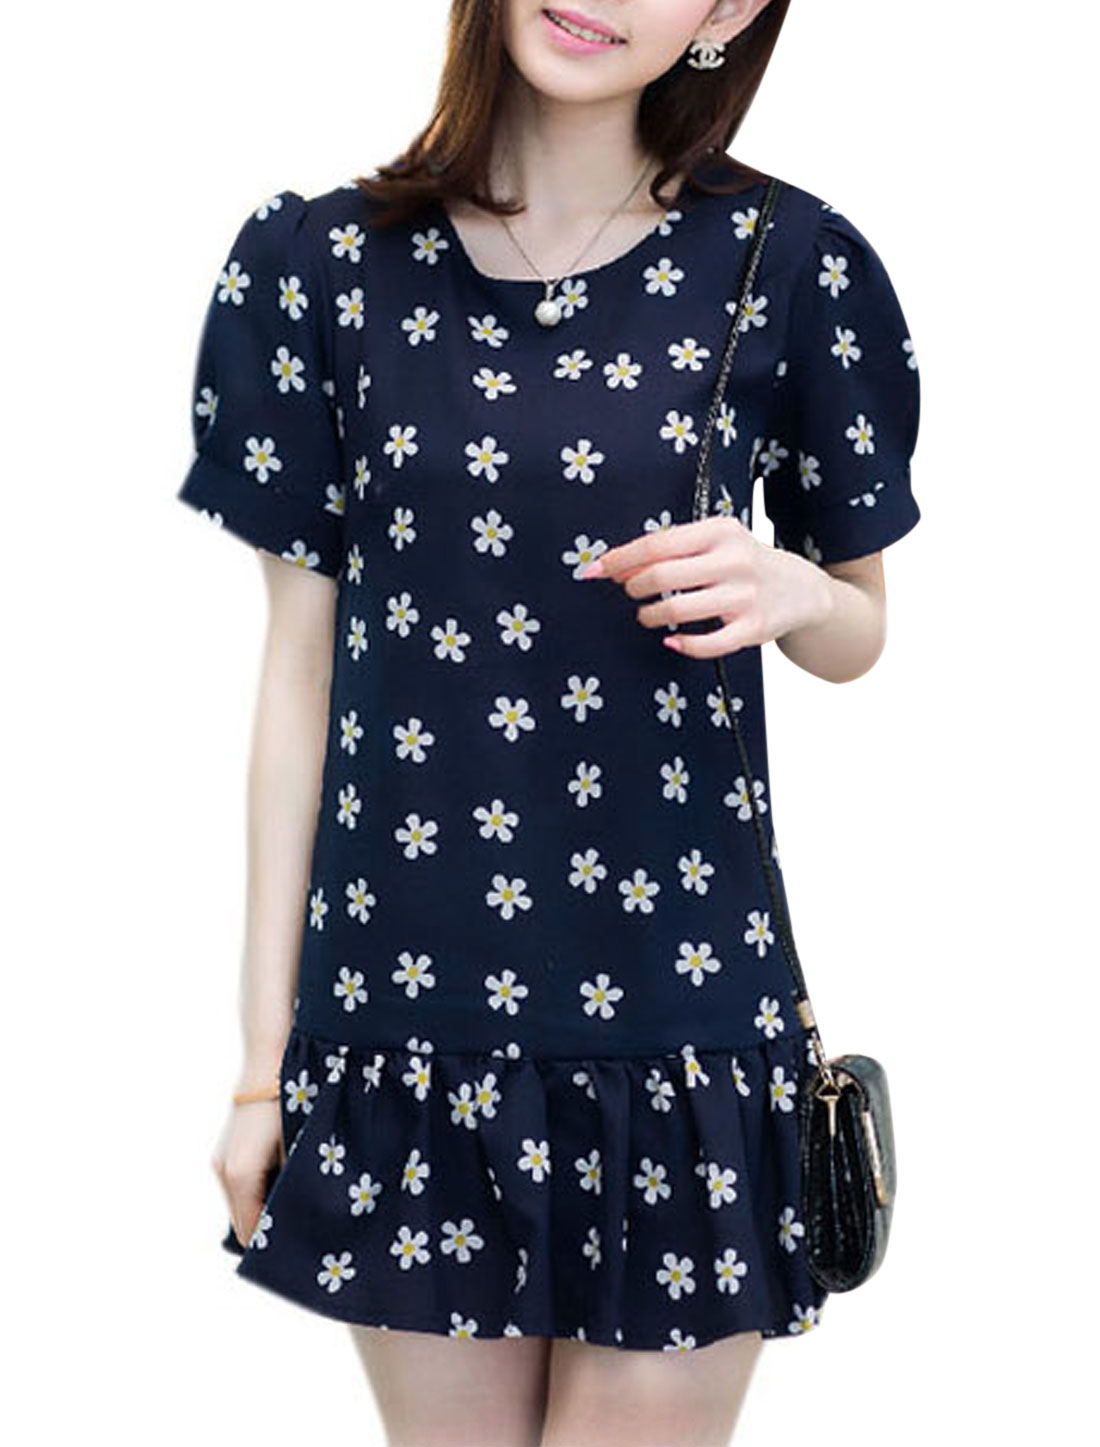 Lady Short Sleeve Floral Prints Unlined Above Knee Dress Navy Blue S